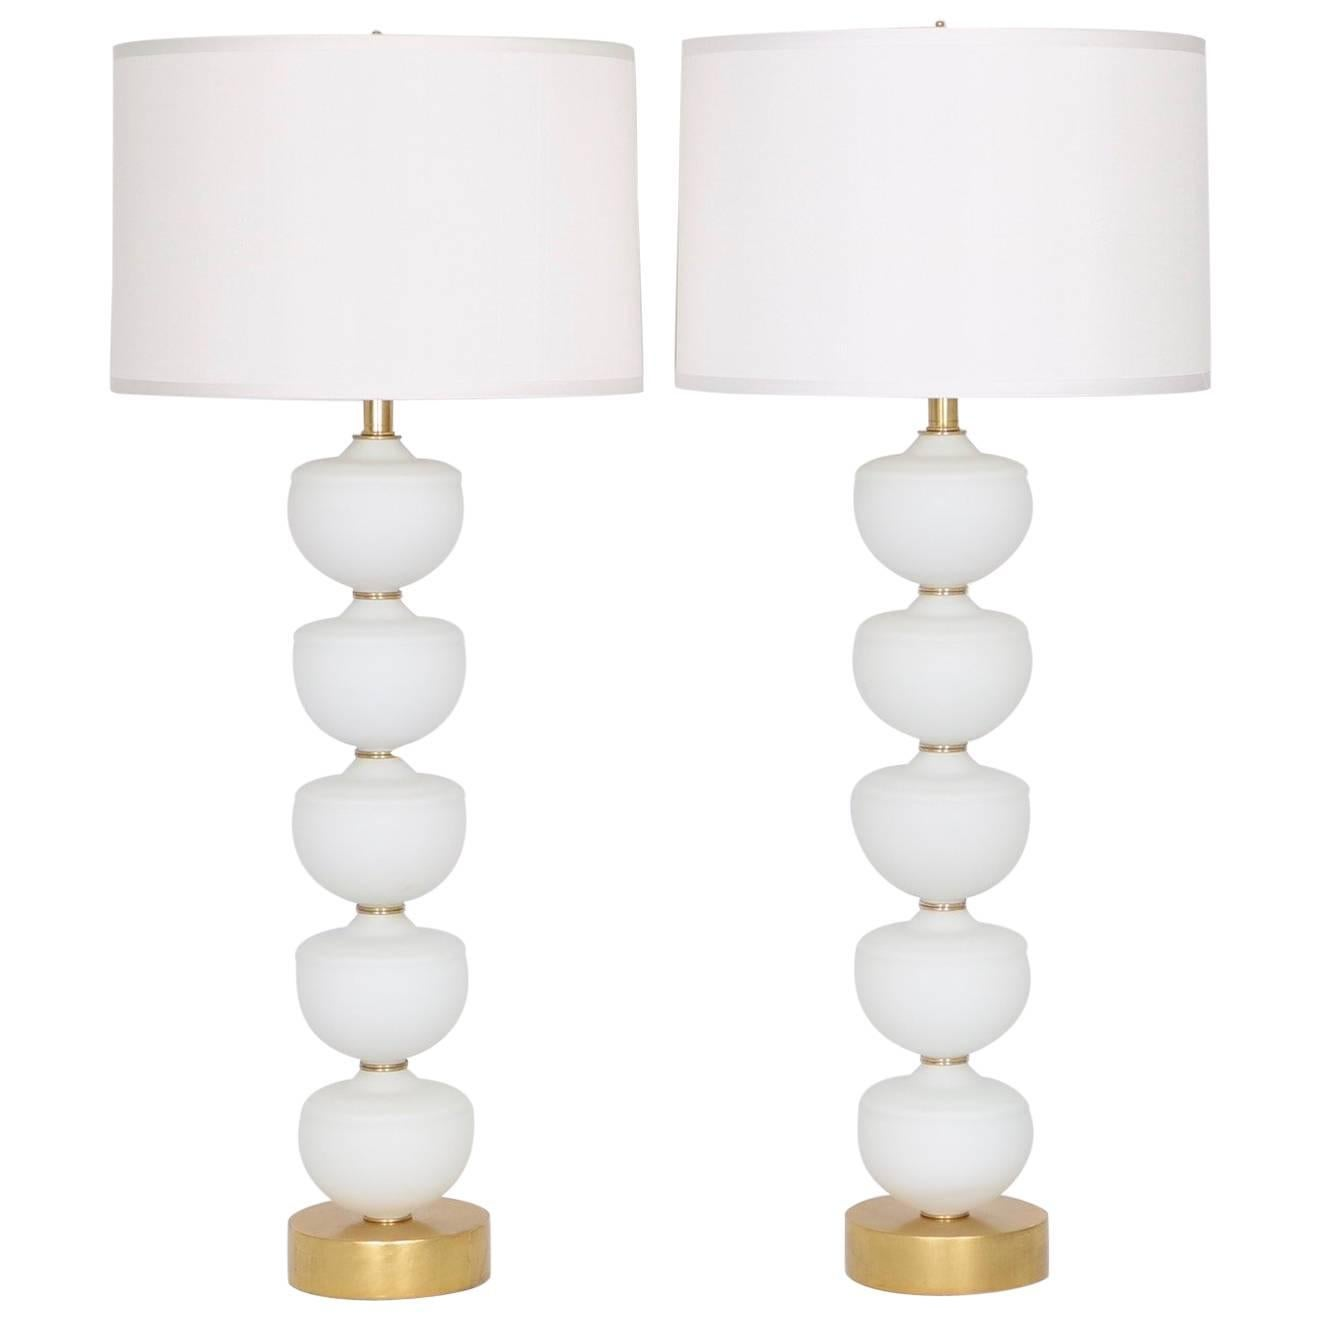 Monumental Pair Of Murano Glass Font Lamps